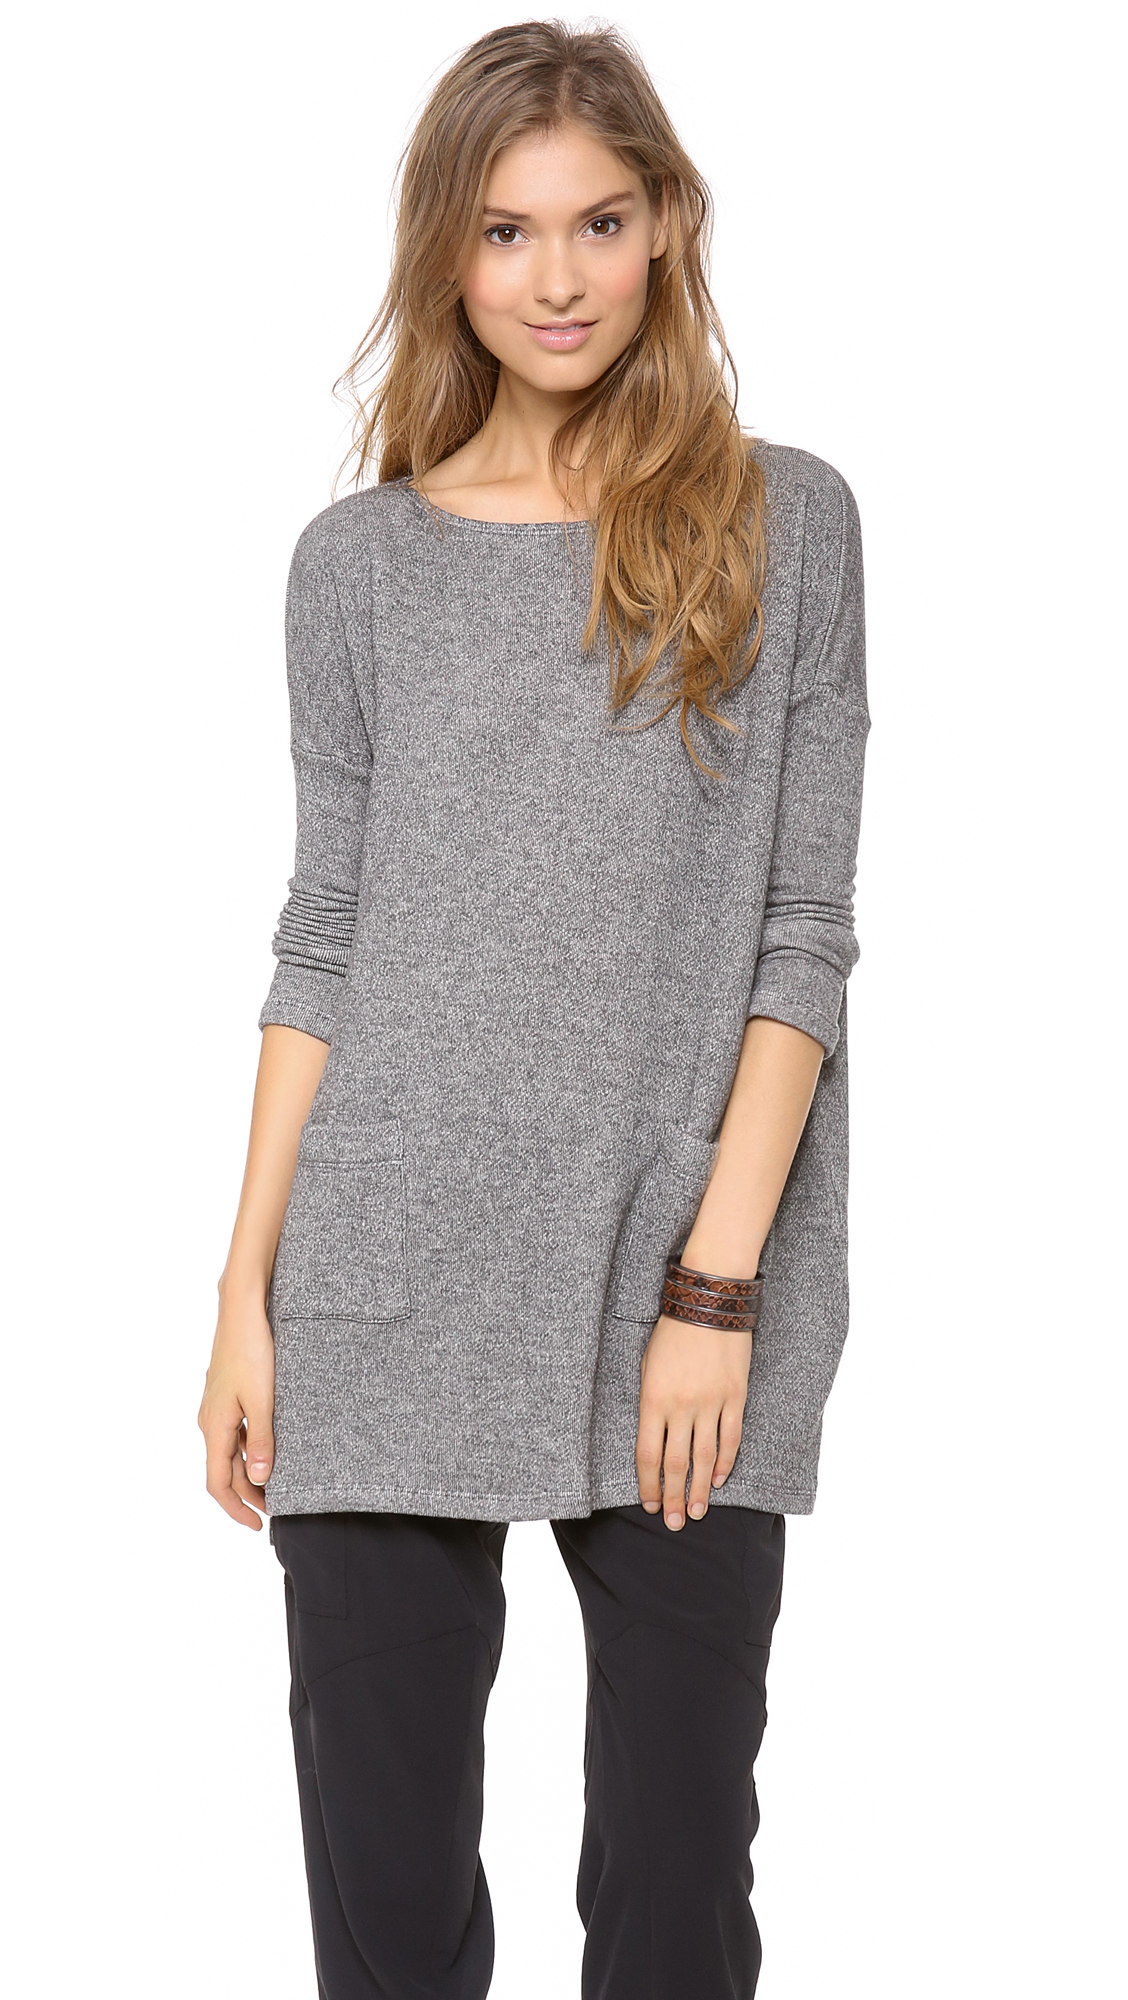 Hatch The Bateau Top in Gray (Charcoal)